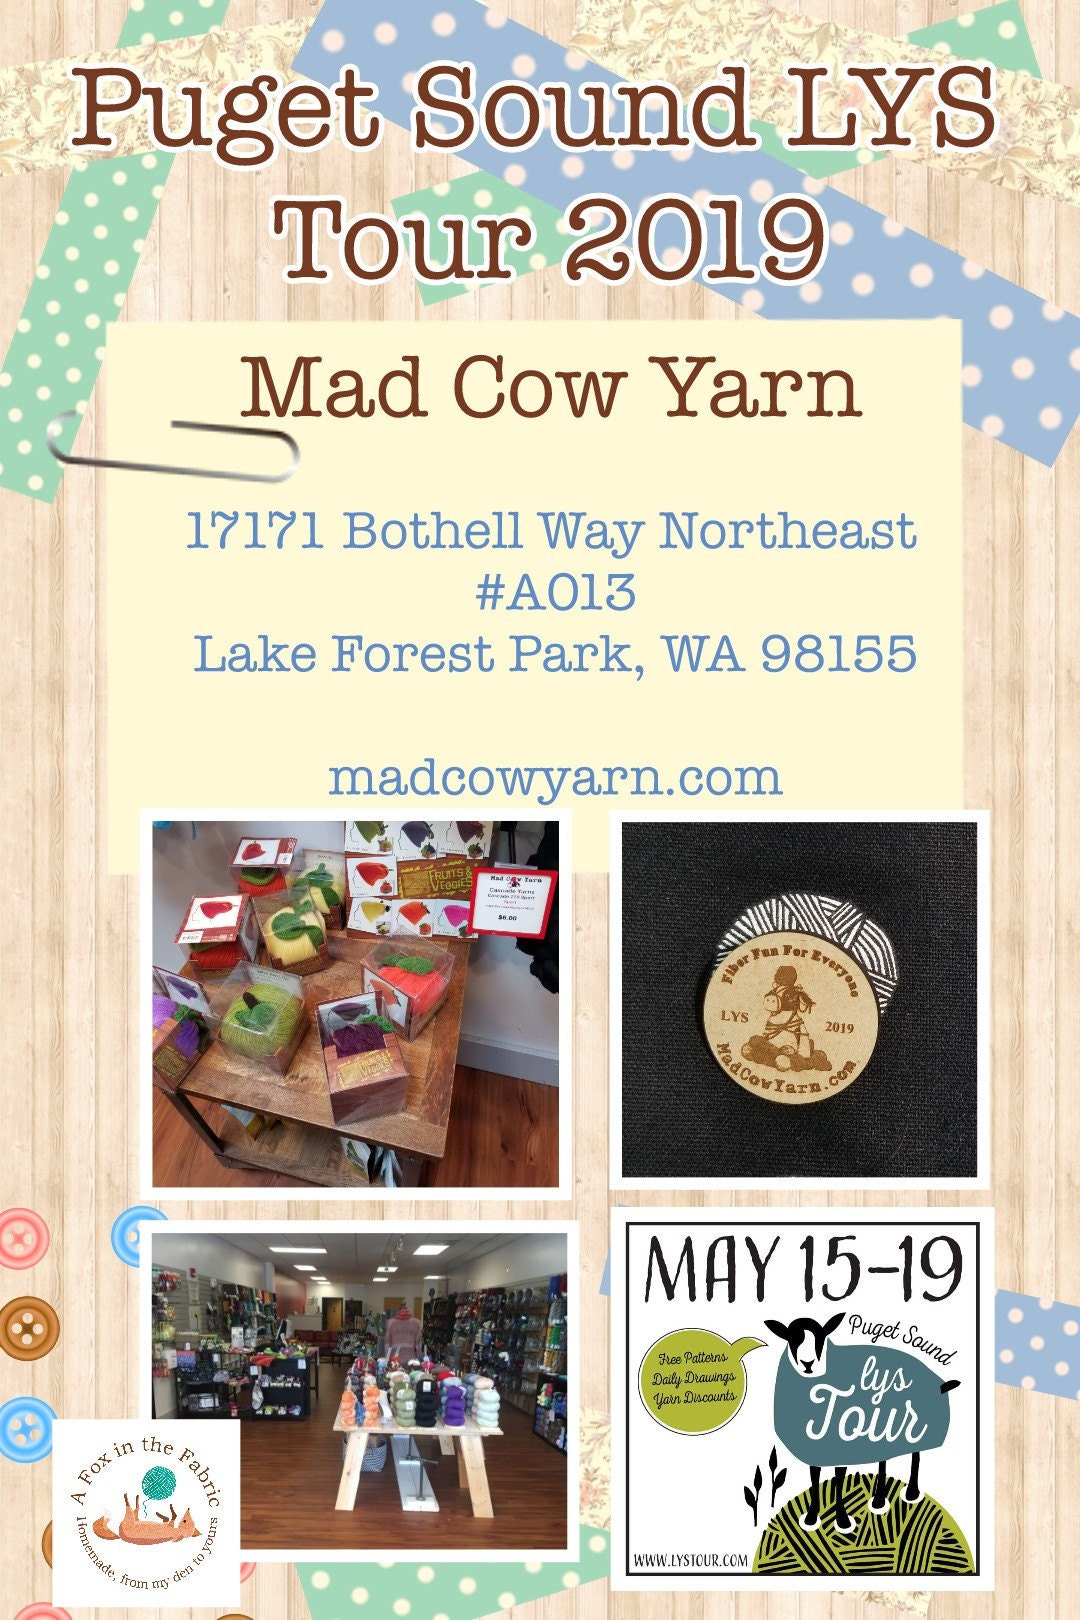 Puget Sound LYS Tour 2019 Mad Cow Yarn